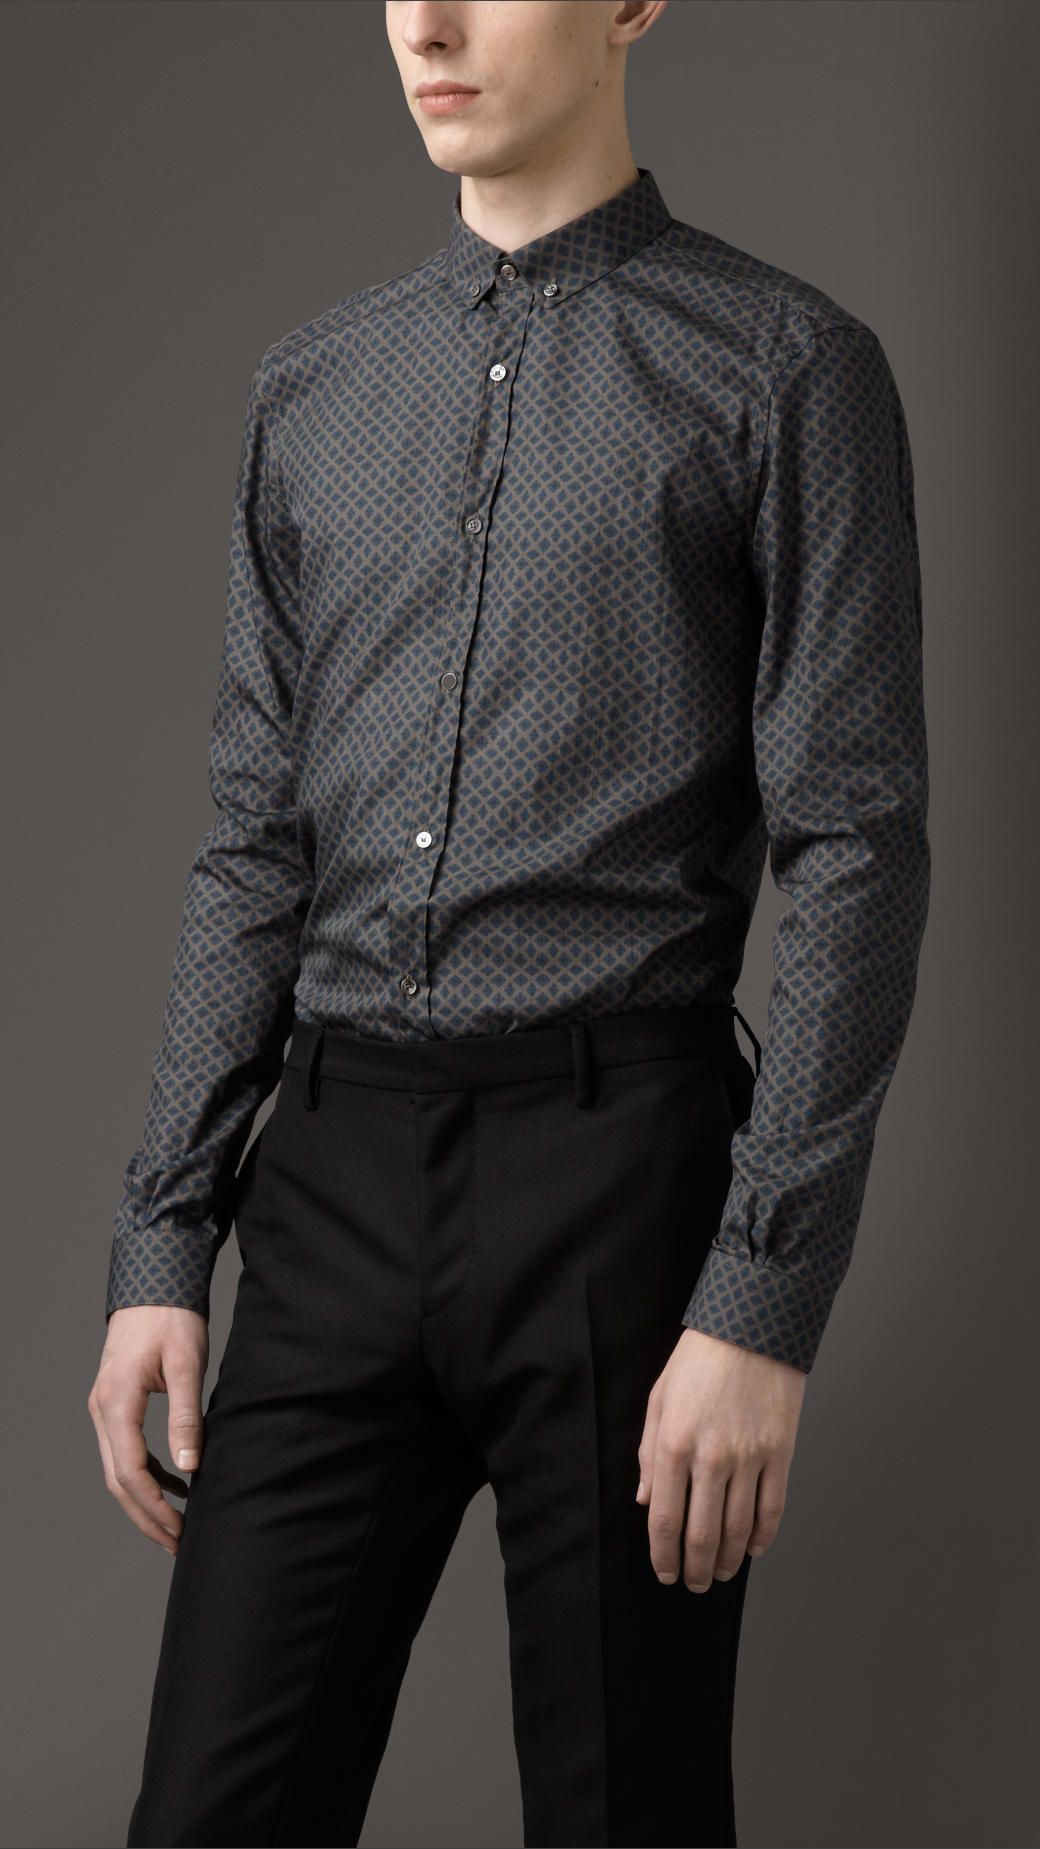 Charcoal Grey Button Down Shirt | Artee Shirt